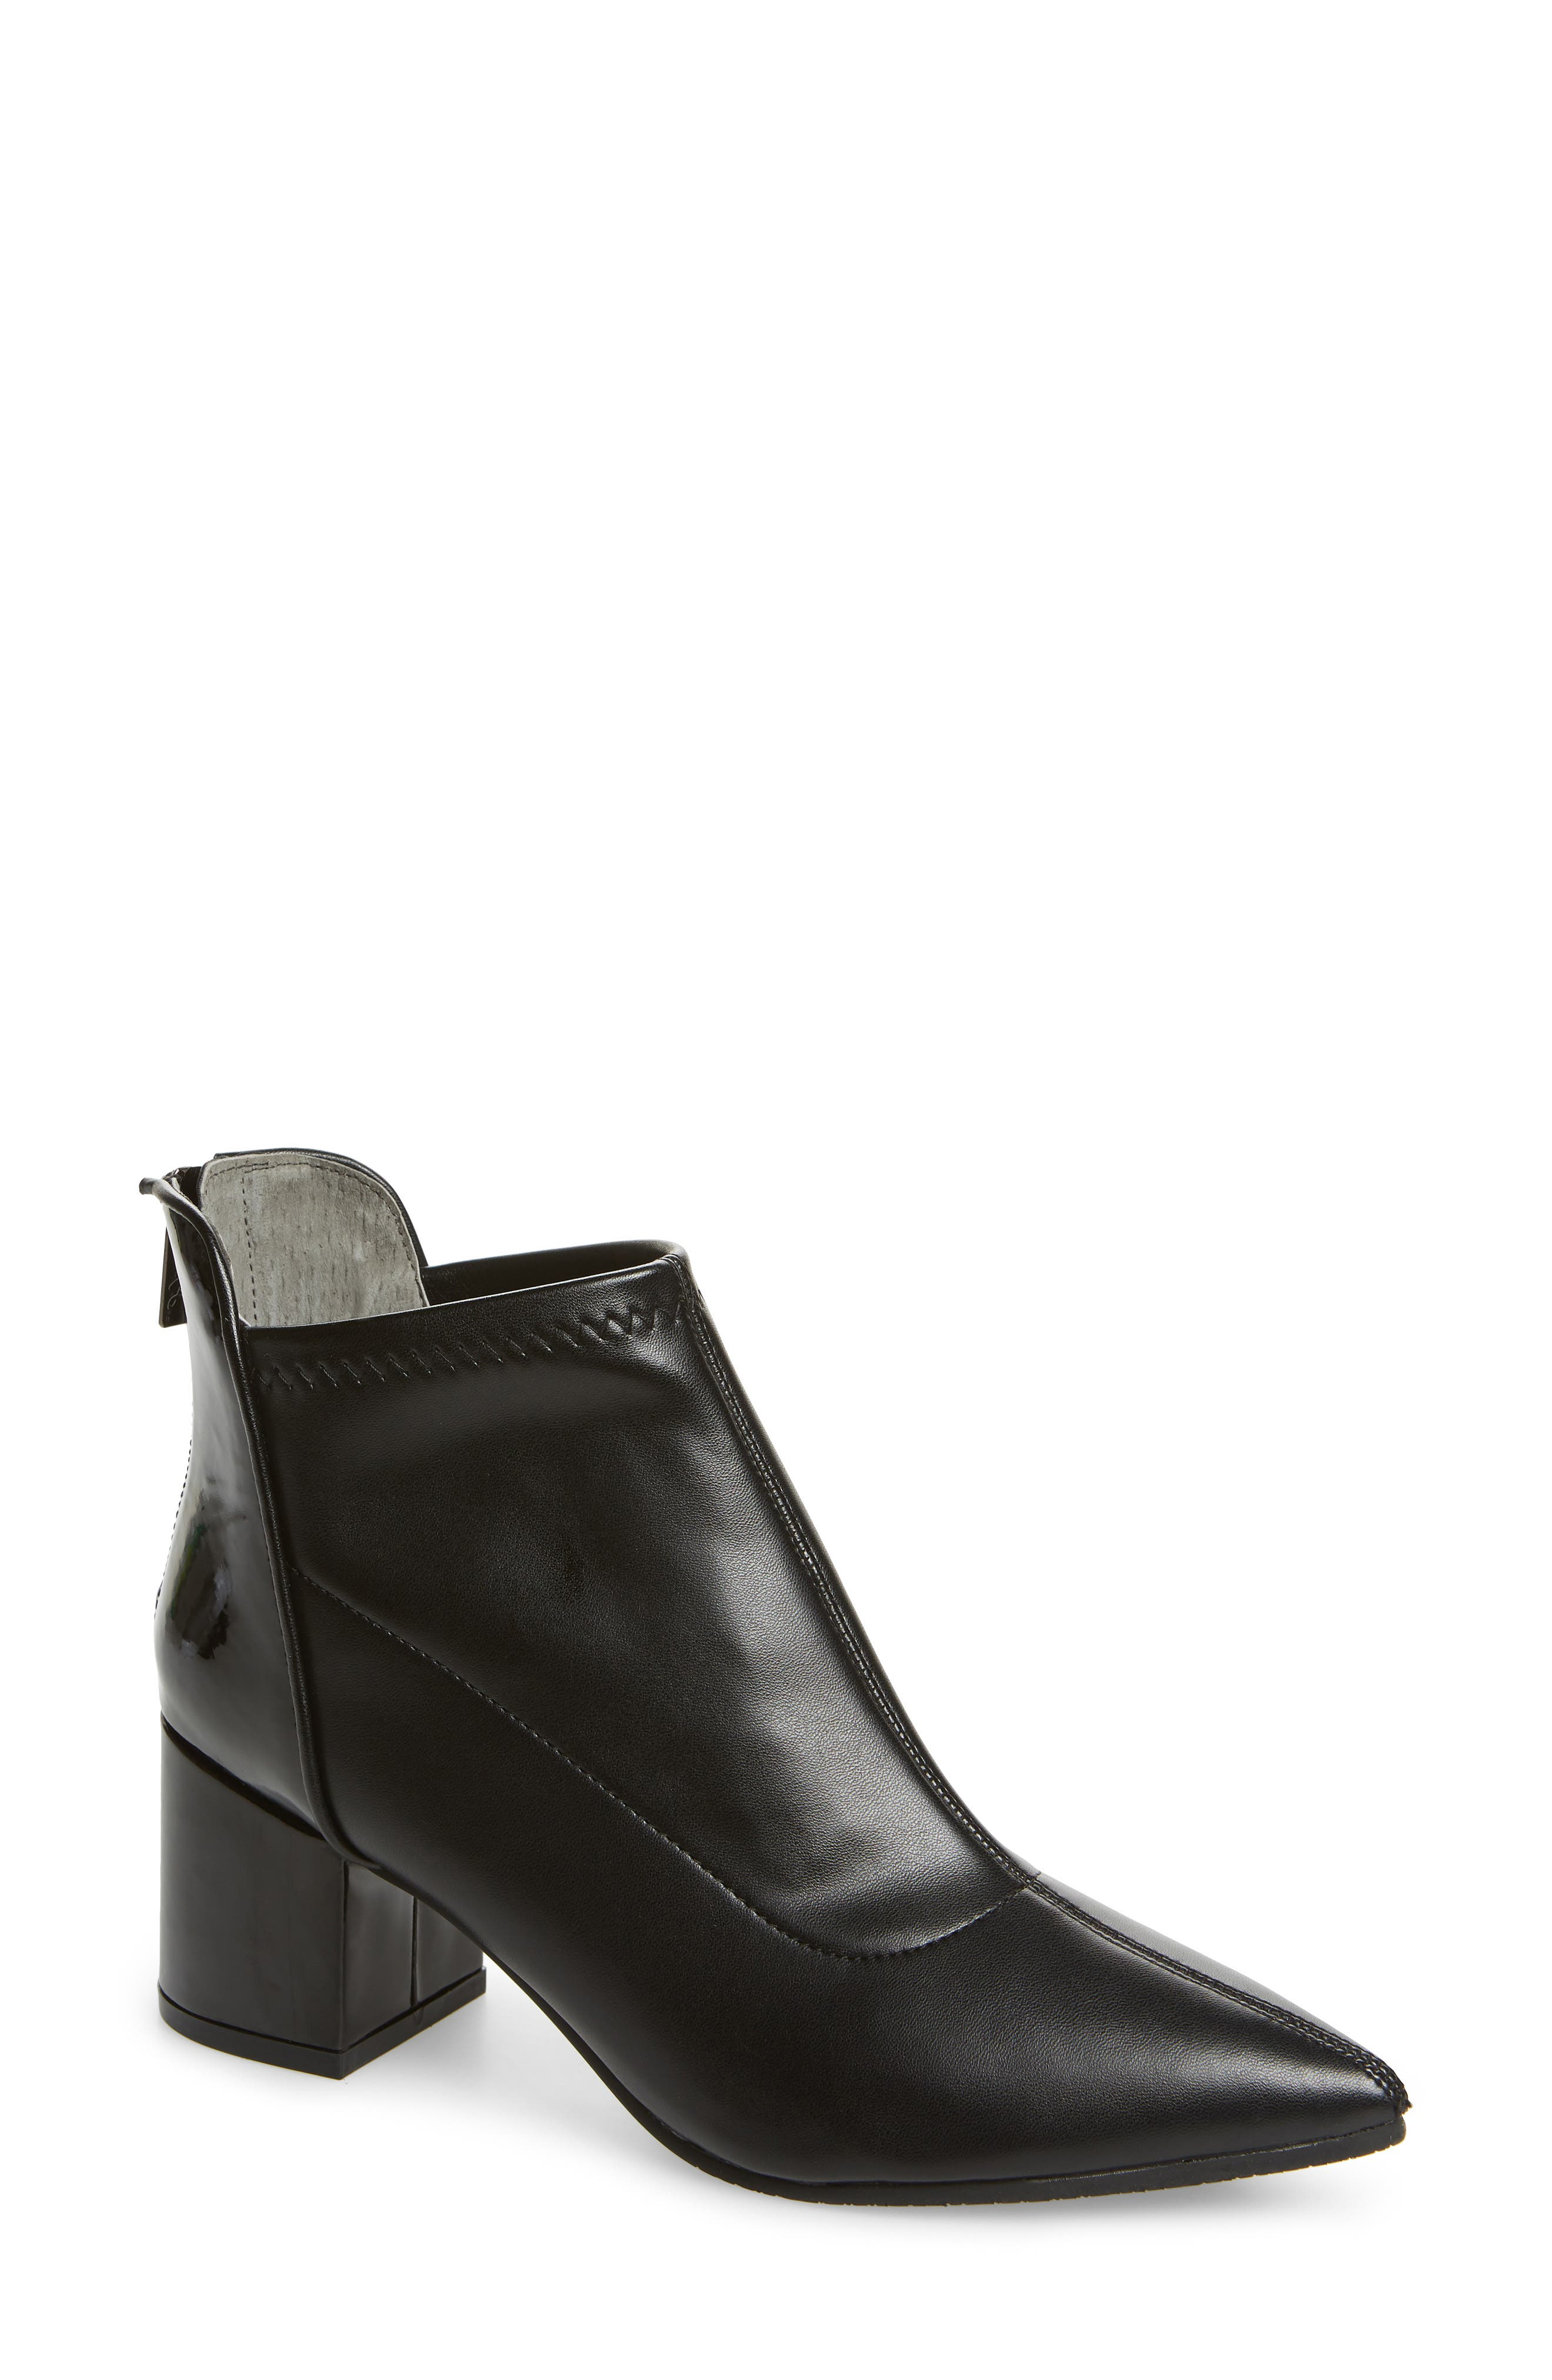 ADRIANNA PAPELL Honey Pointy Toe Stretch Bootie in Black Stretch